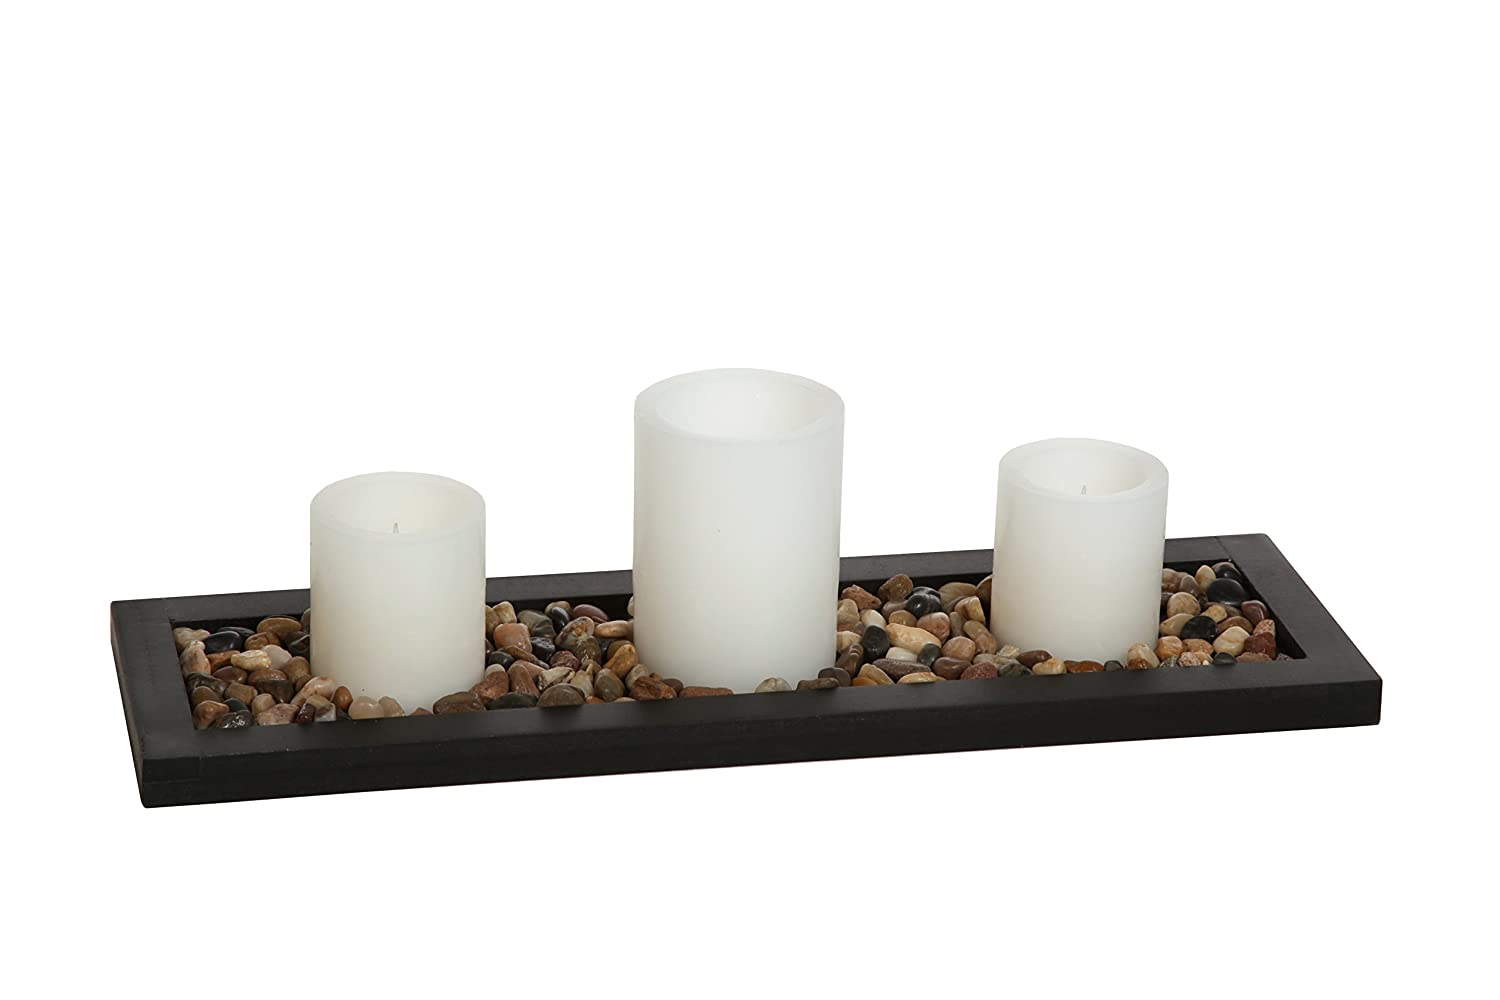 Hosley's Flameless LED Candle Gift Set - Set of 3 Pillar Candles, Decorative Pebbles and Wood Tray. Ideal Gift for Home Office, Wedding, Party, Family Room, Spa, Aromatherapy Candle Gardens HG Global FBA-H62854ON-1-EA